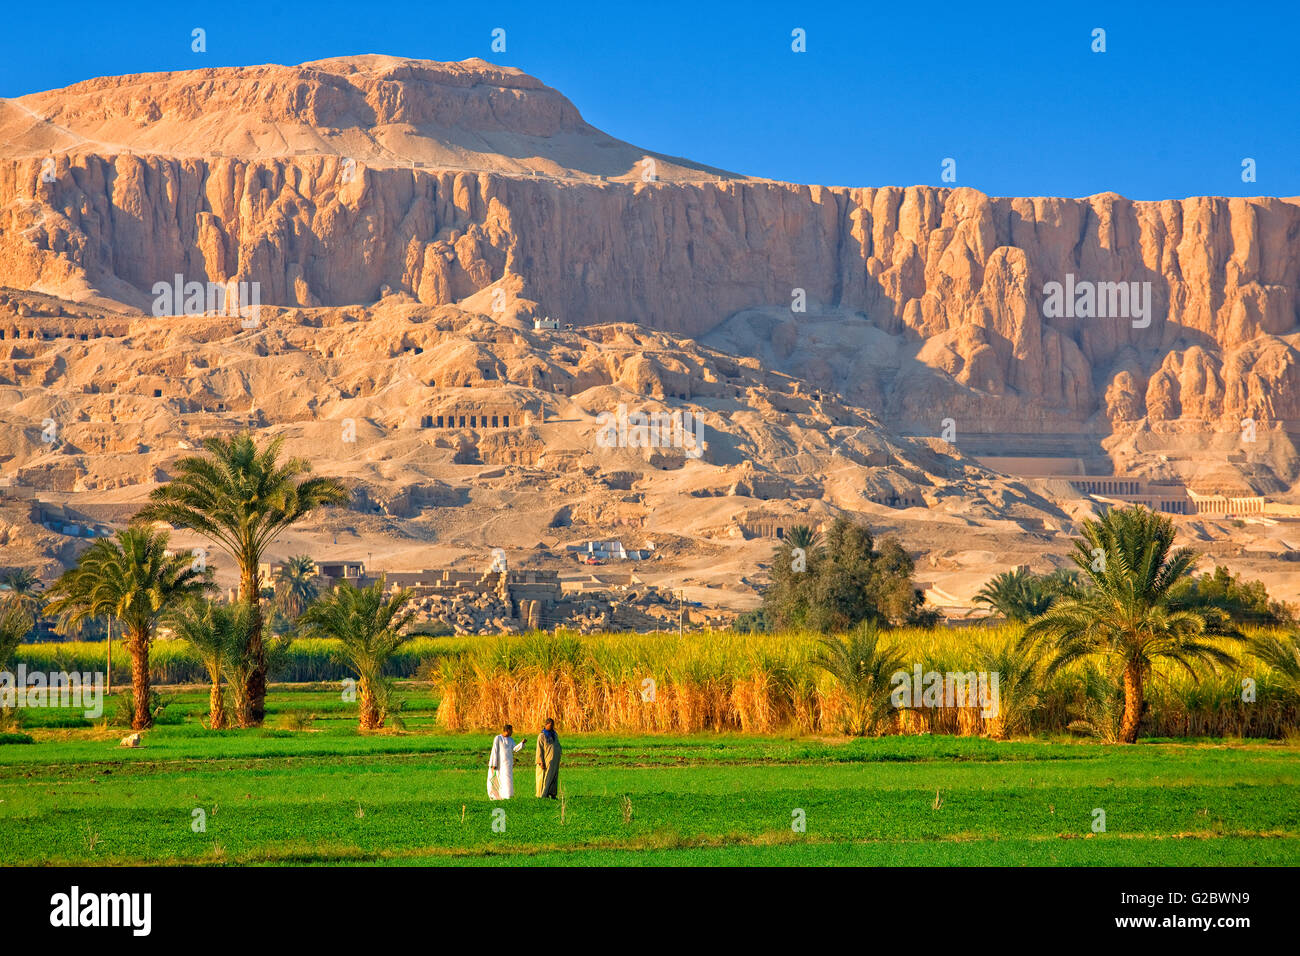 The Nile valley at Luxor - Stock Image